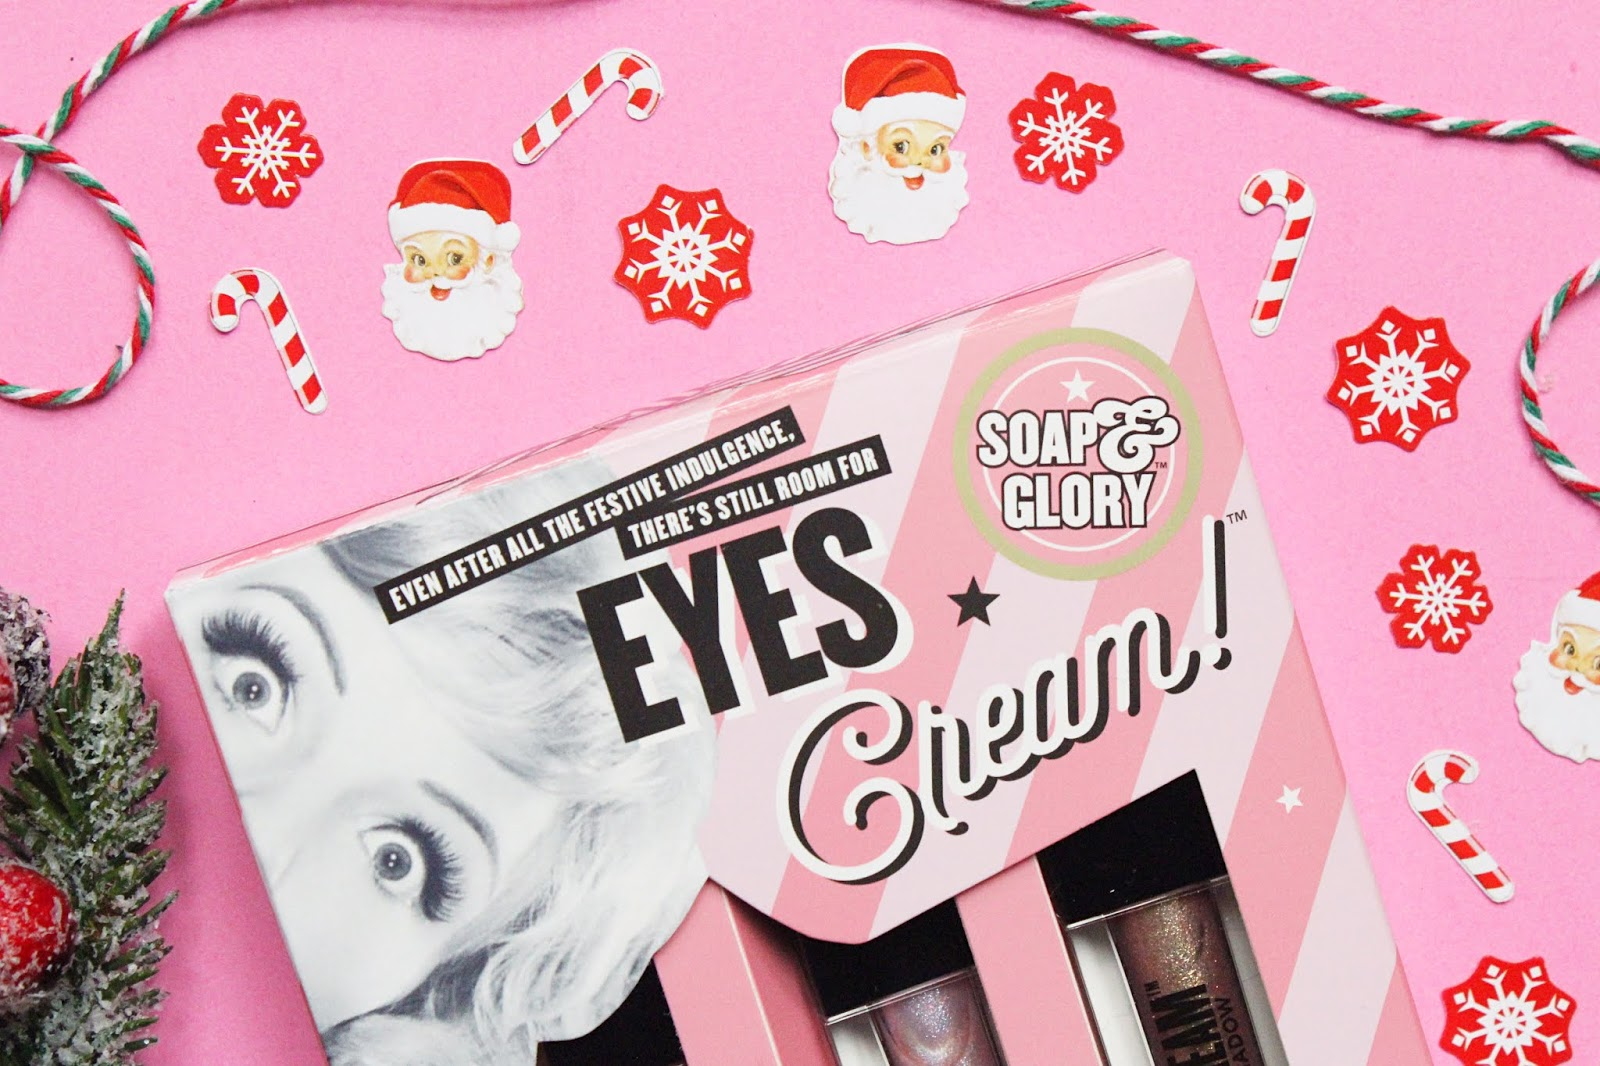 Soap and Glory Eyes Cream Liquid Eyeshadow Trio